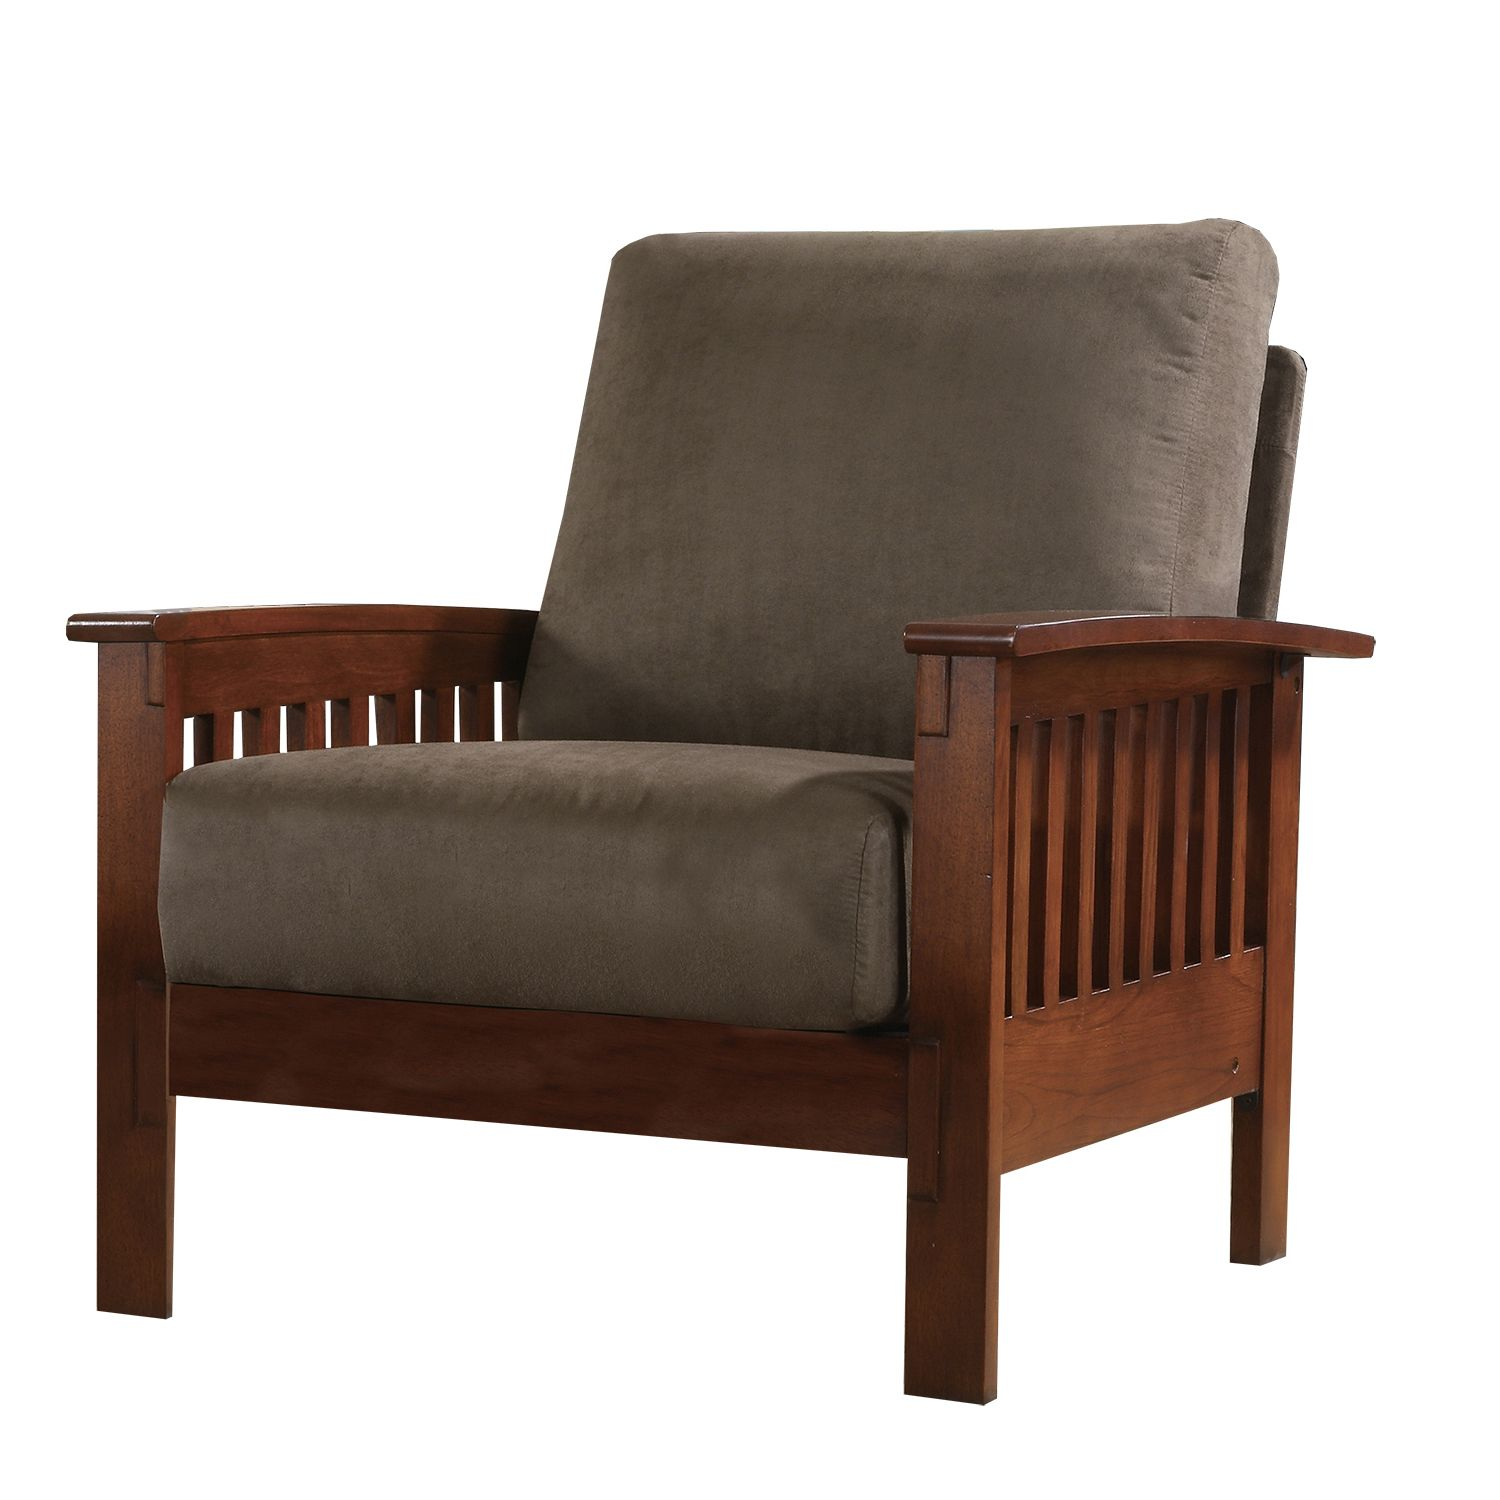 Oxford Creek Mission-style Oak and Olive Chair